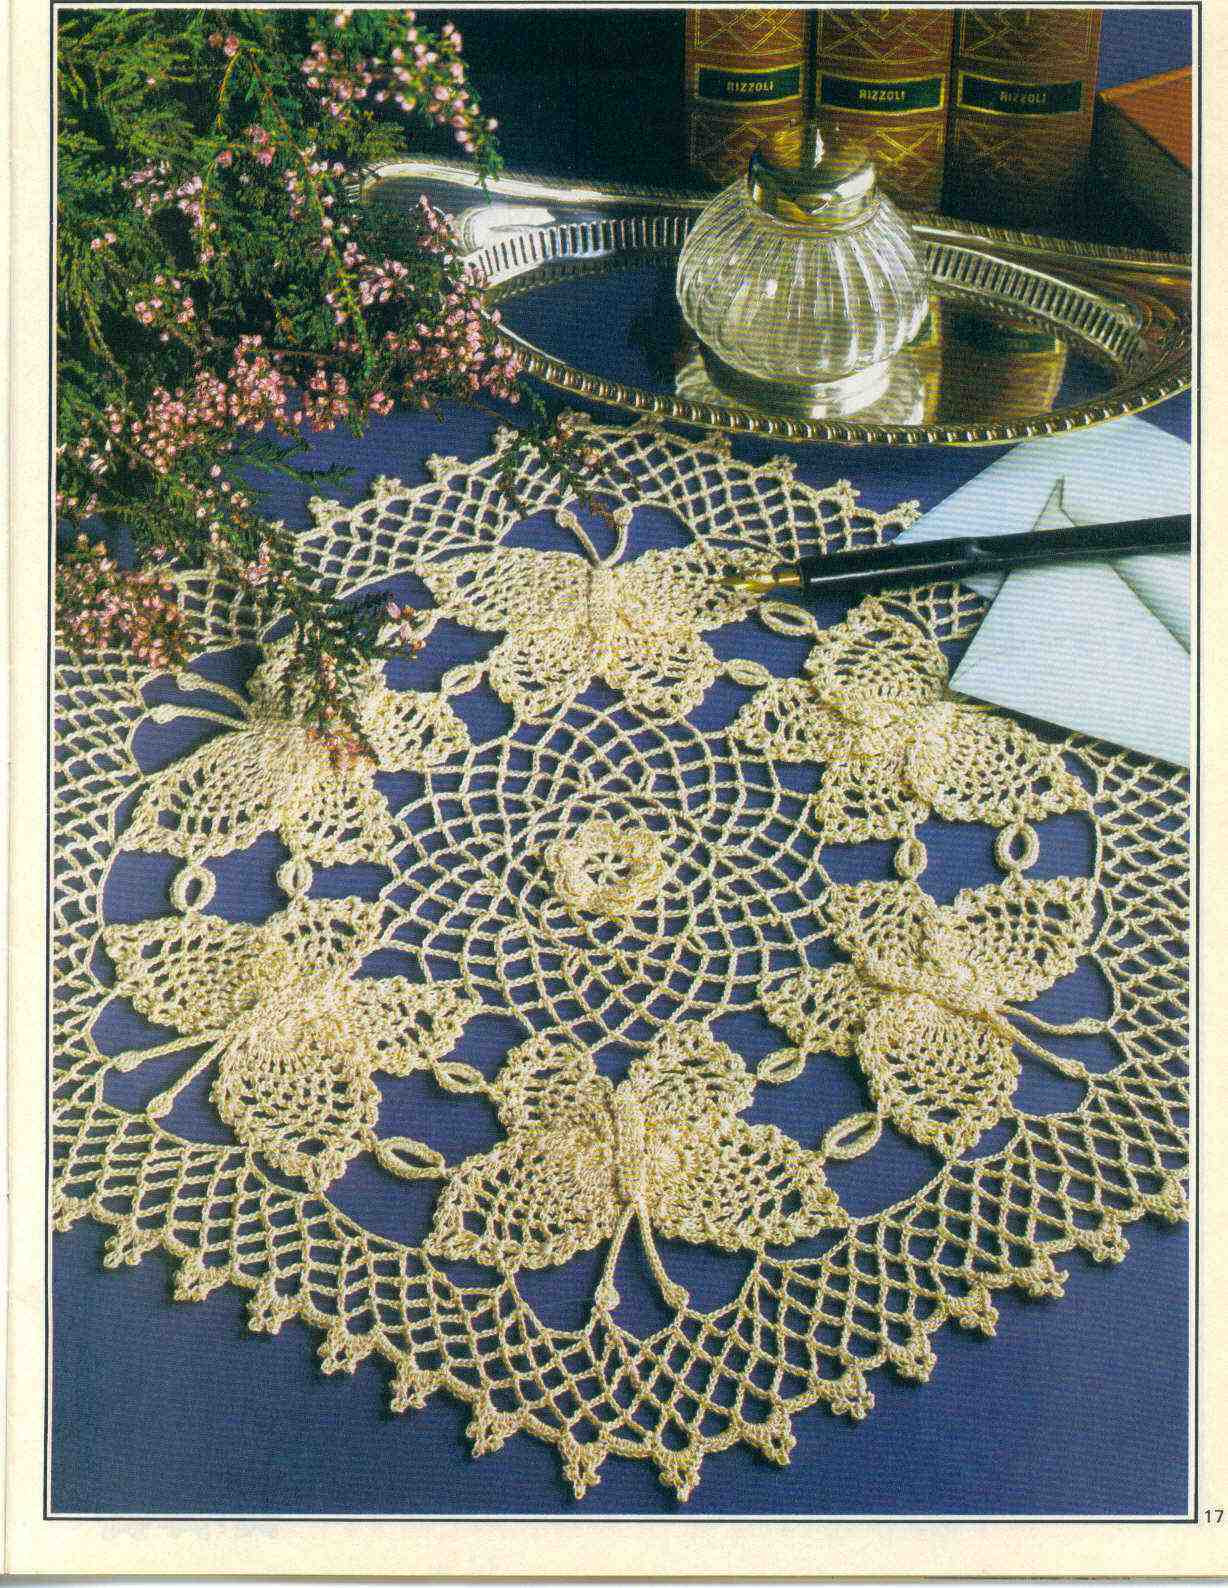 Doily Patterns Elegant Free butterfly Crochet Patterns Free Crochet Patterns Of Innovative 50 Models Doily Patterns